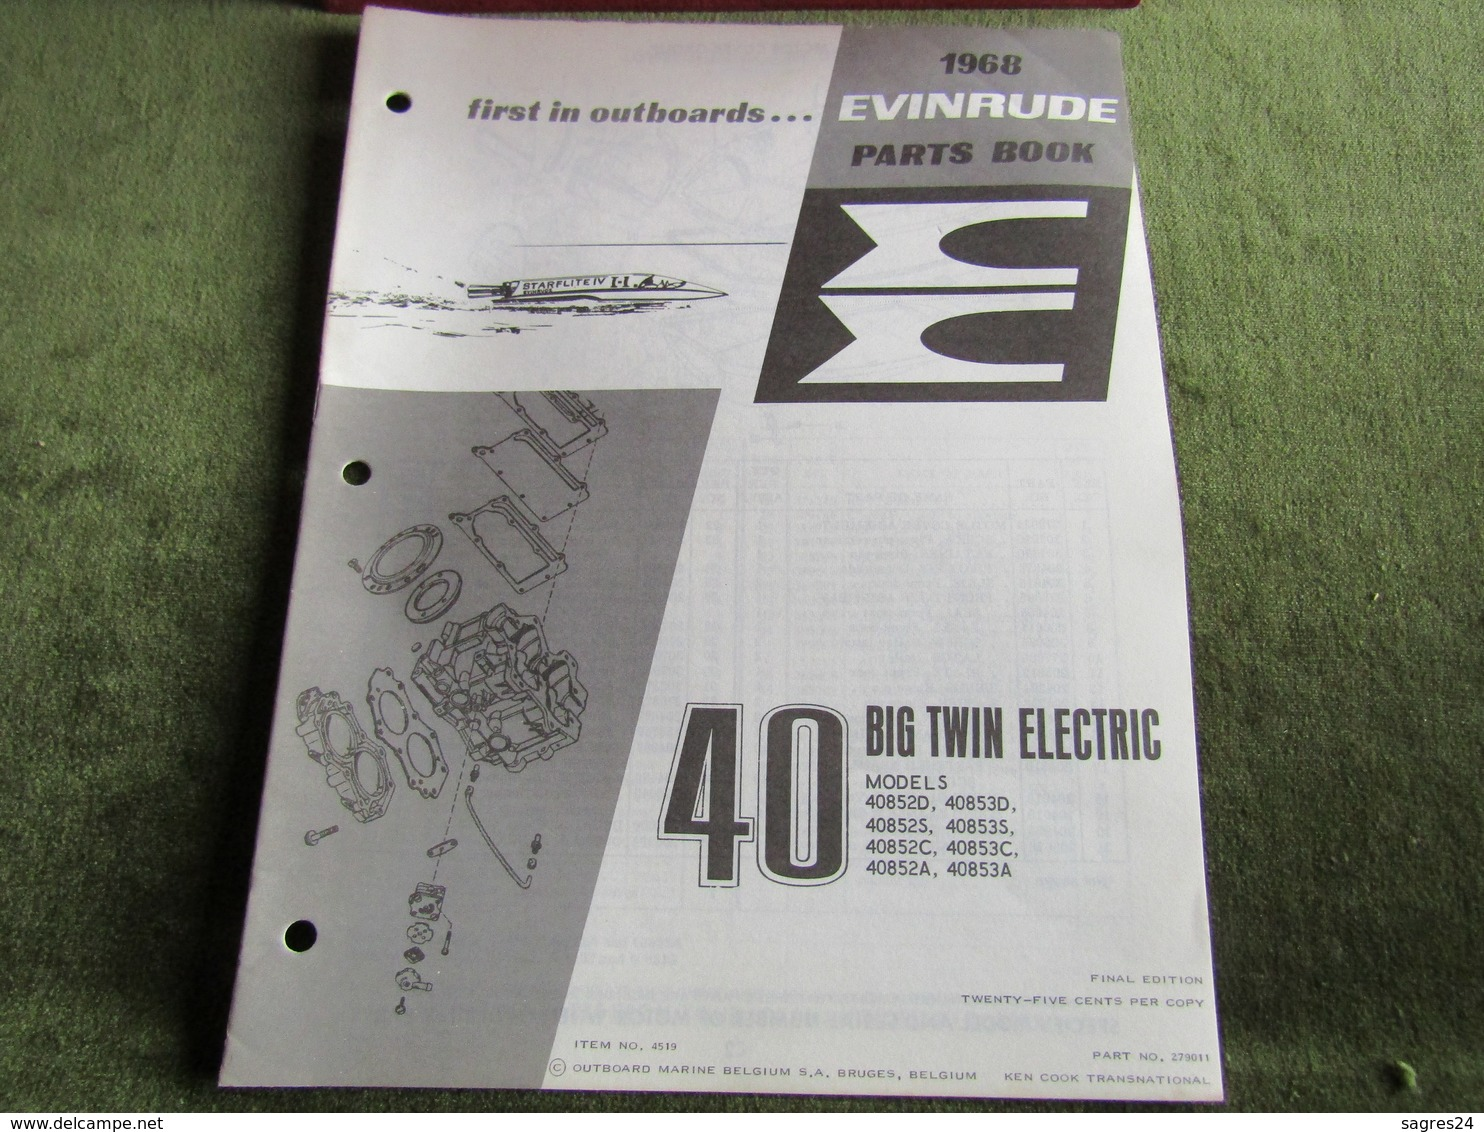 Evinrude Outboard 40 Big Twin Electric Model S Parts Book 1968 - Boats